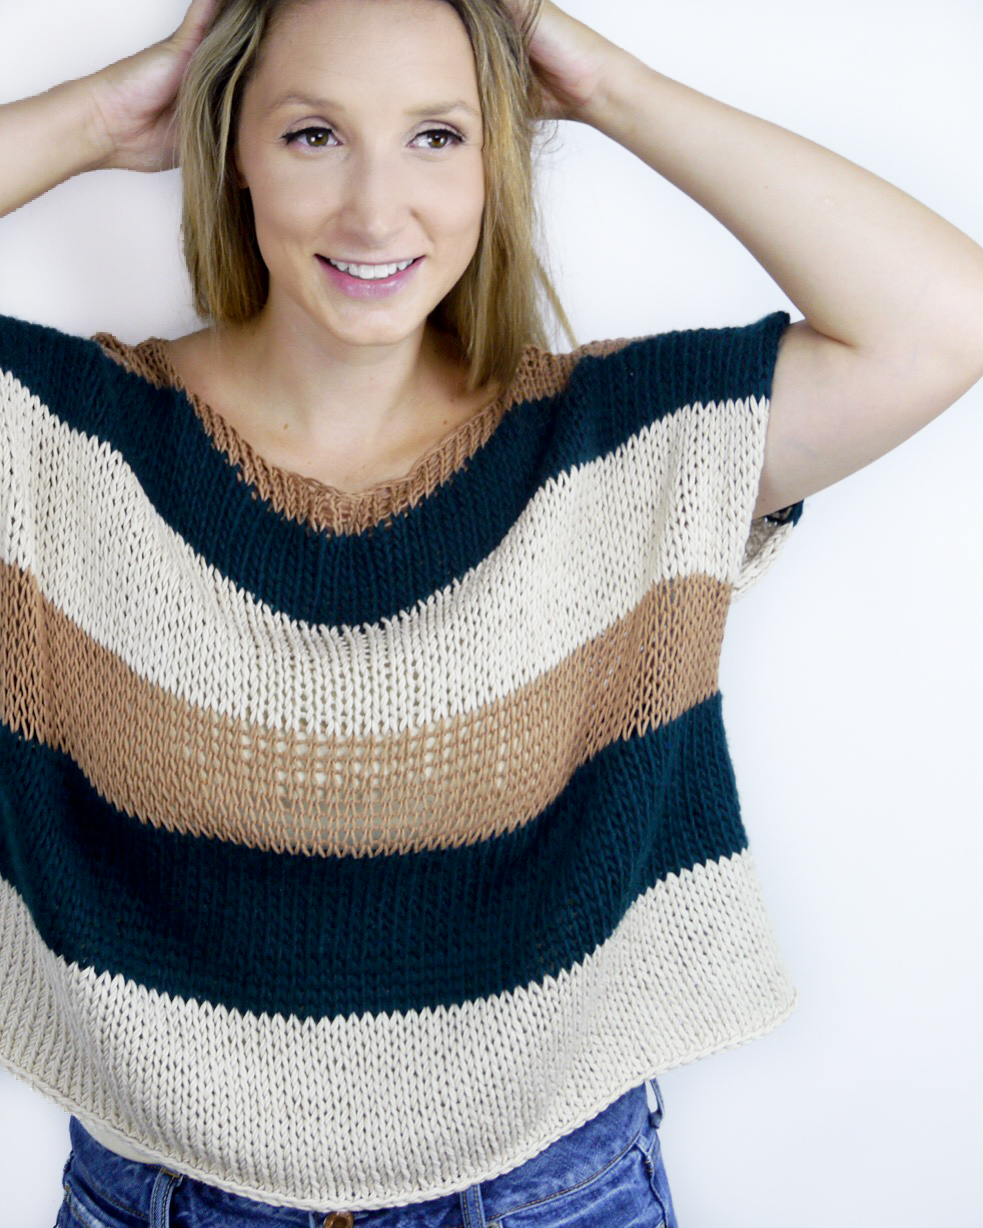 7109aa5733162 ... sweater making it longer wider. ••••••••••••••••••••••••••••••••  •••••••••••••••••••••••••••••••• This is an original pattern by Christine  Rosen of ...